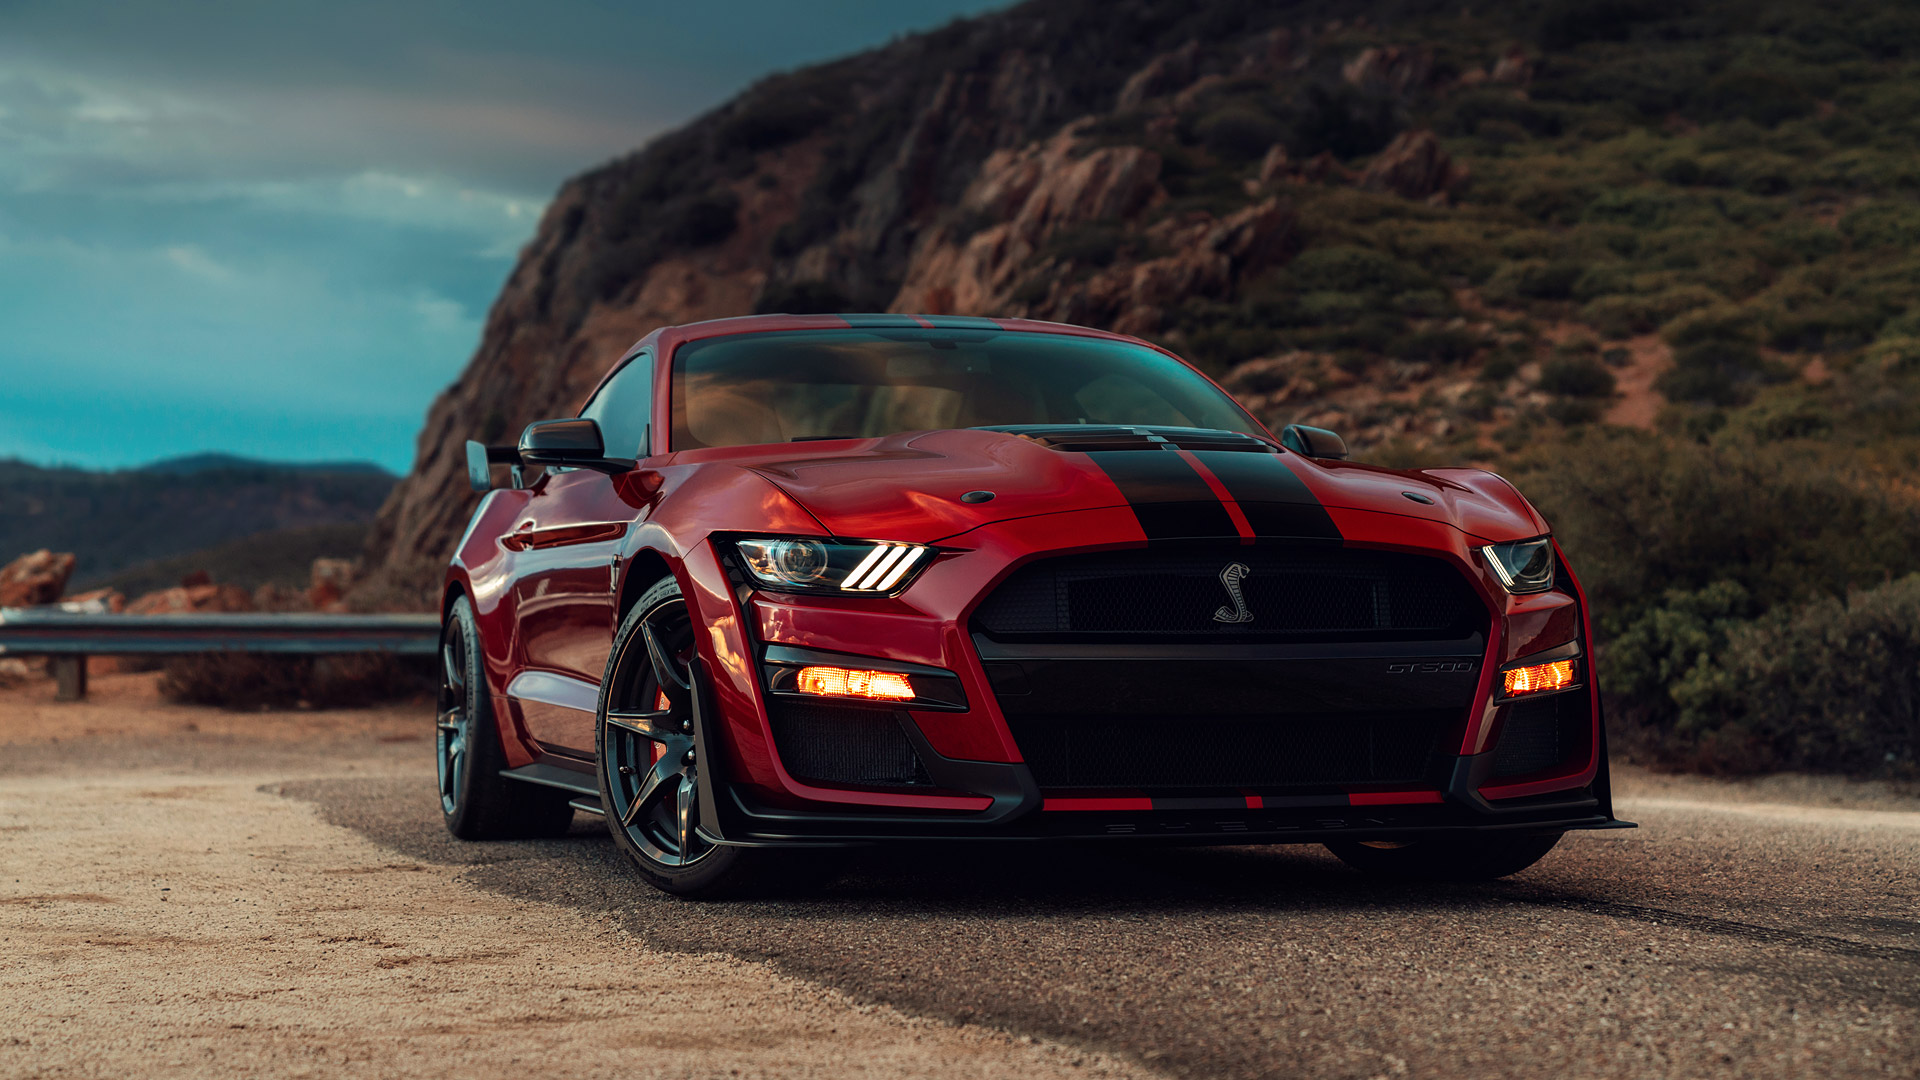 2020 Ford Mustang Shelby GT500 Wallpapers Specs Videos   4K HD 1920x1080